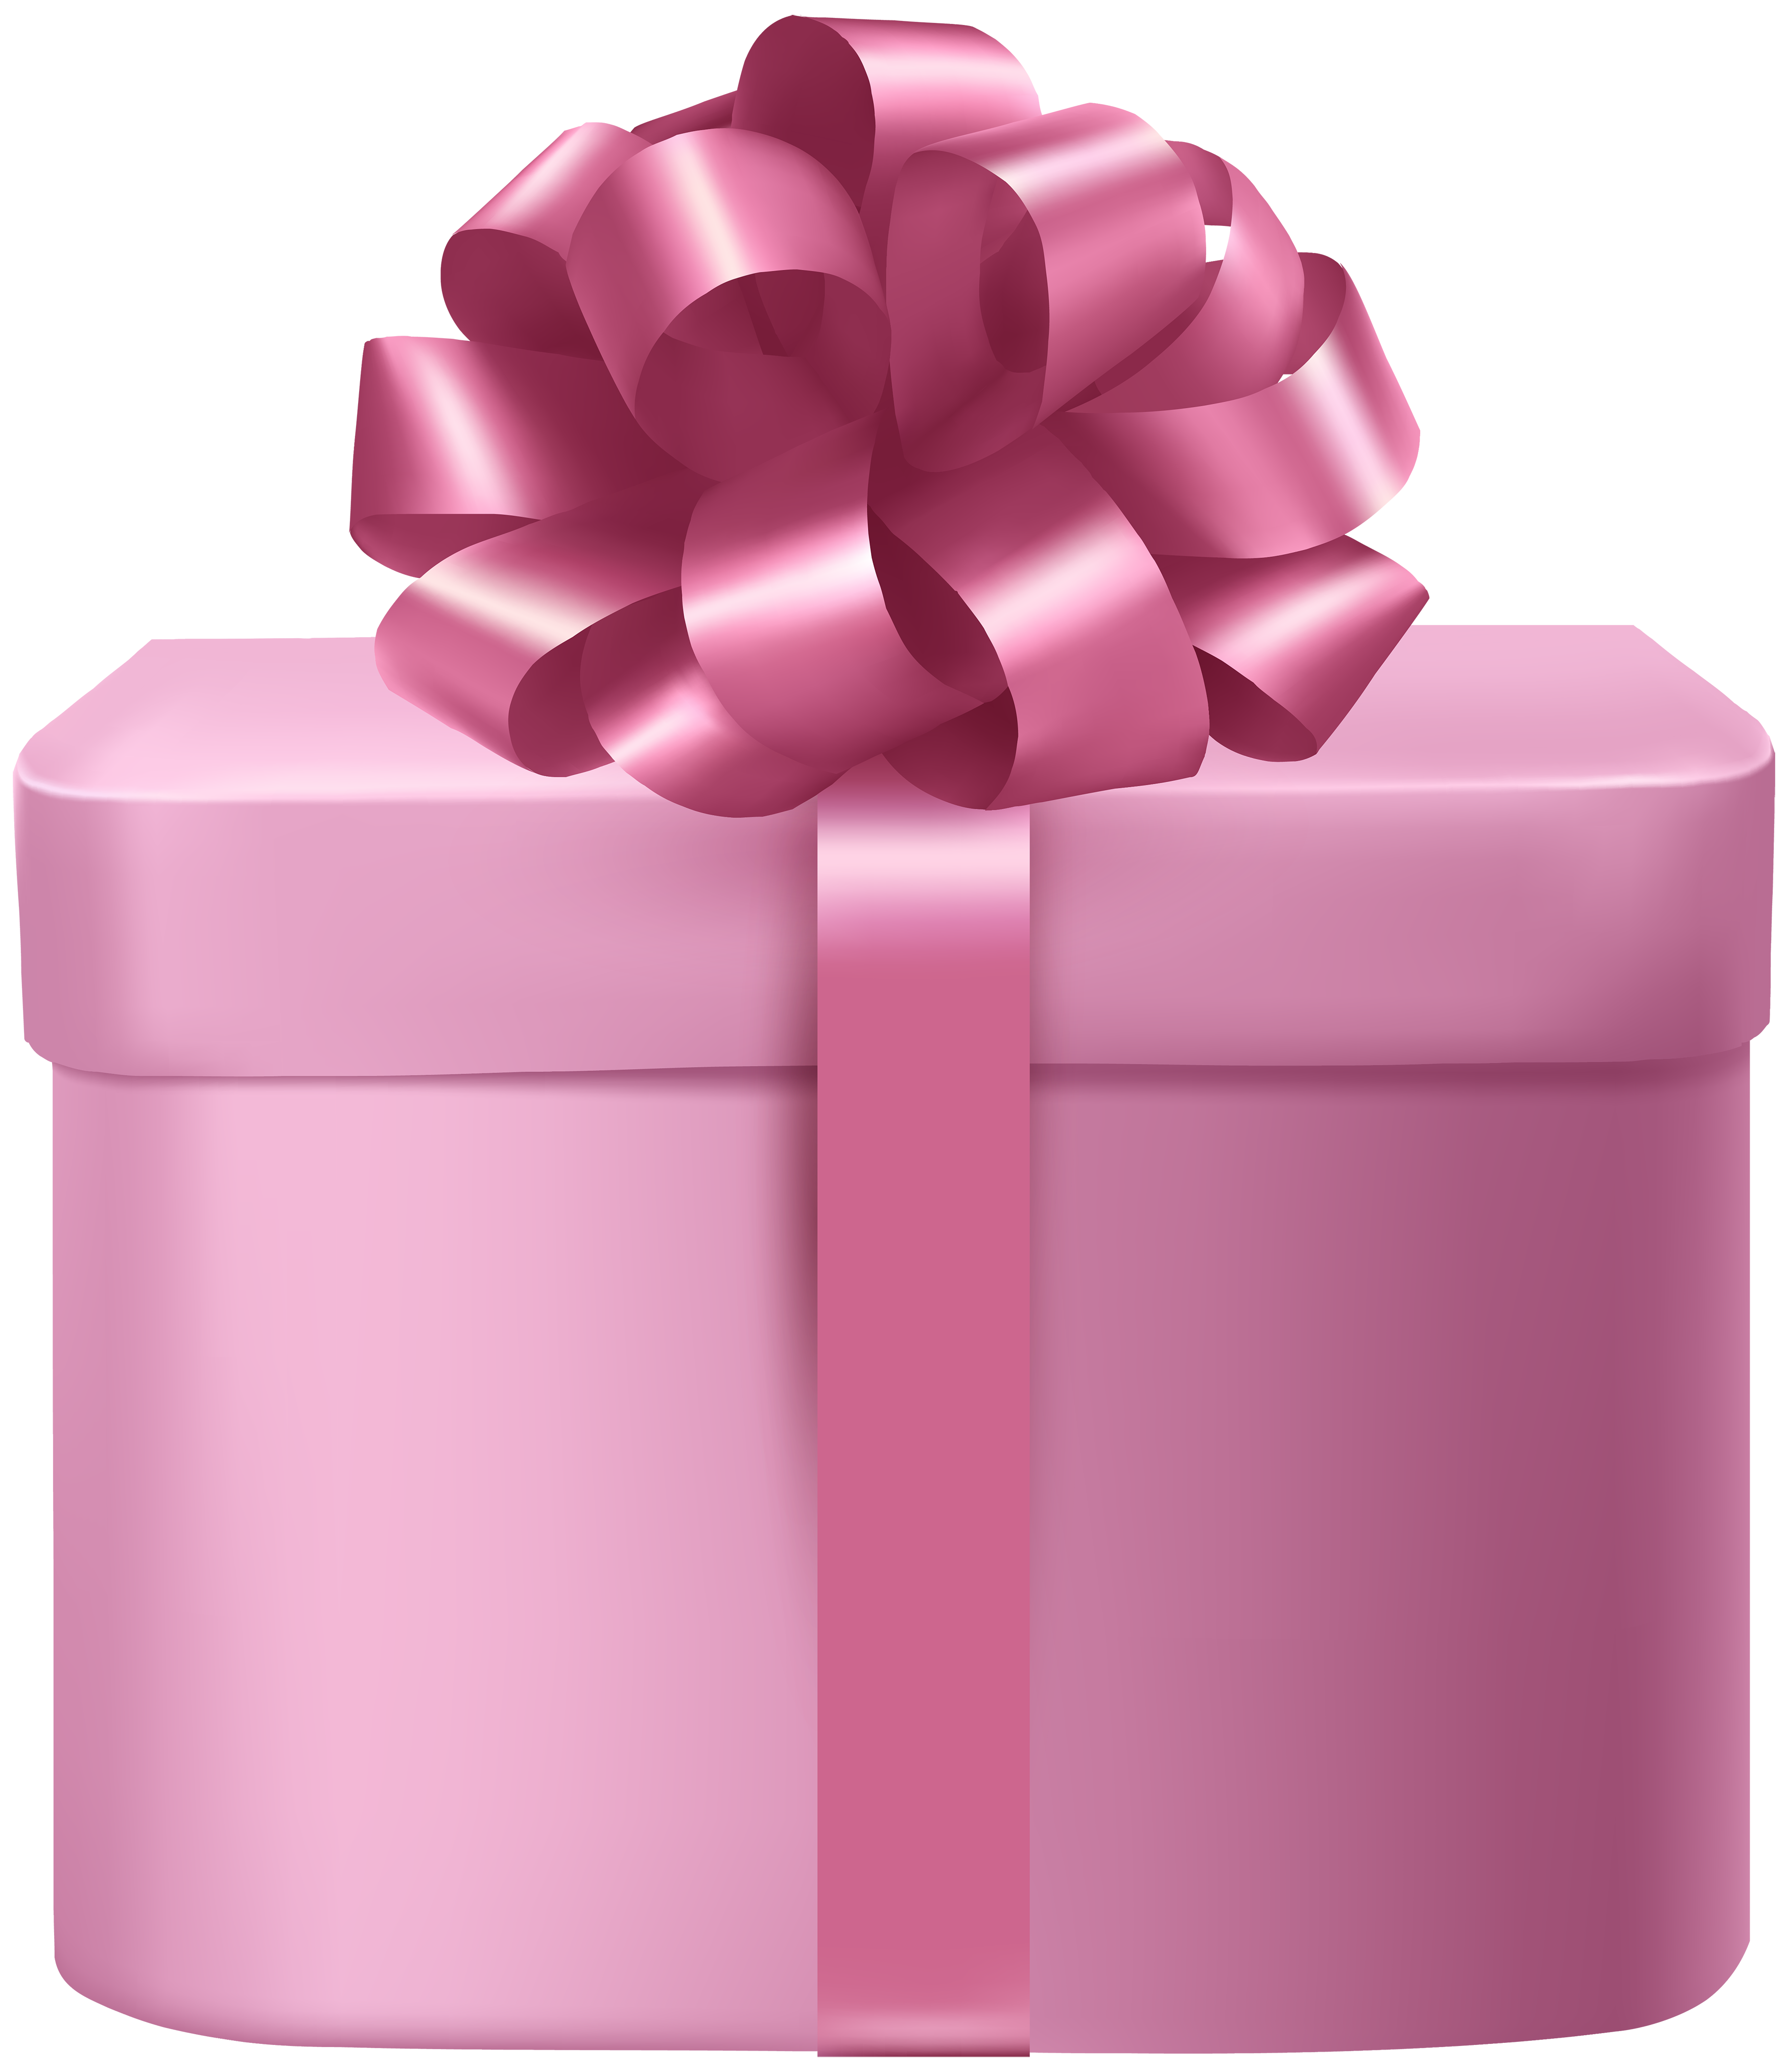 Gift clipart pink gift. Png best web